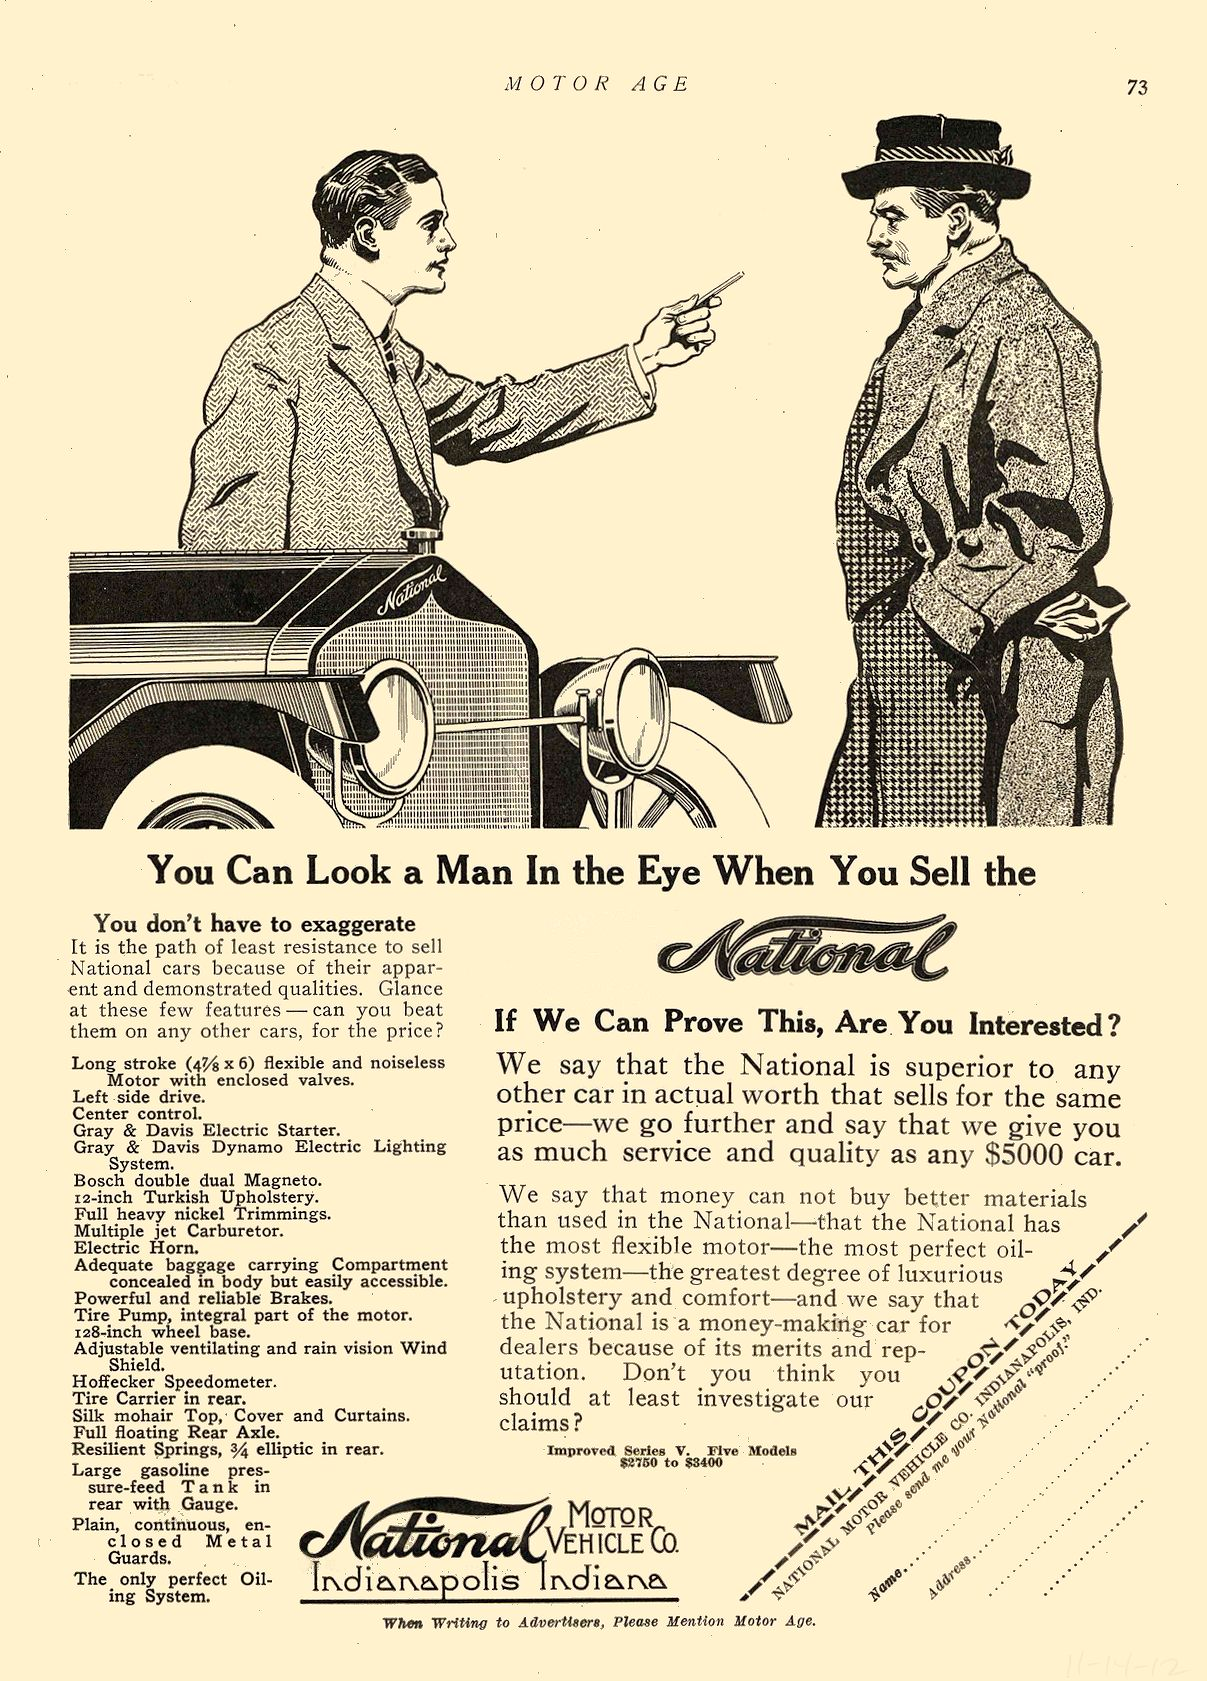 1912 11 14 NATIONAL You Can Look a Man In the Eye When You Sell the National National Motor Vehicle Co. Indianapolis, IND MOTOR AGE November 14, 1912 8.5″x12″ page 73